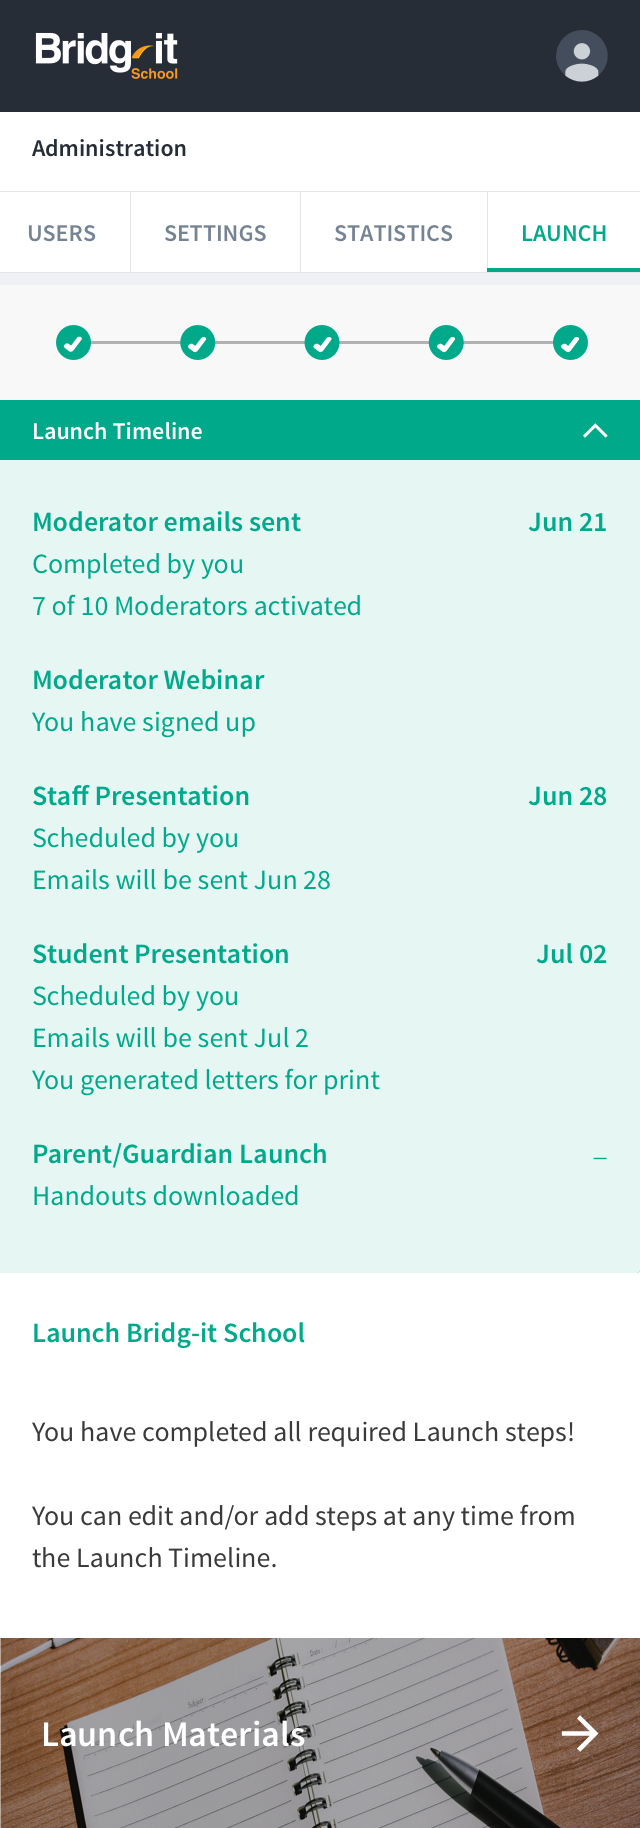 Mob Launch 03 Finish Timeline.png